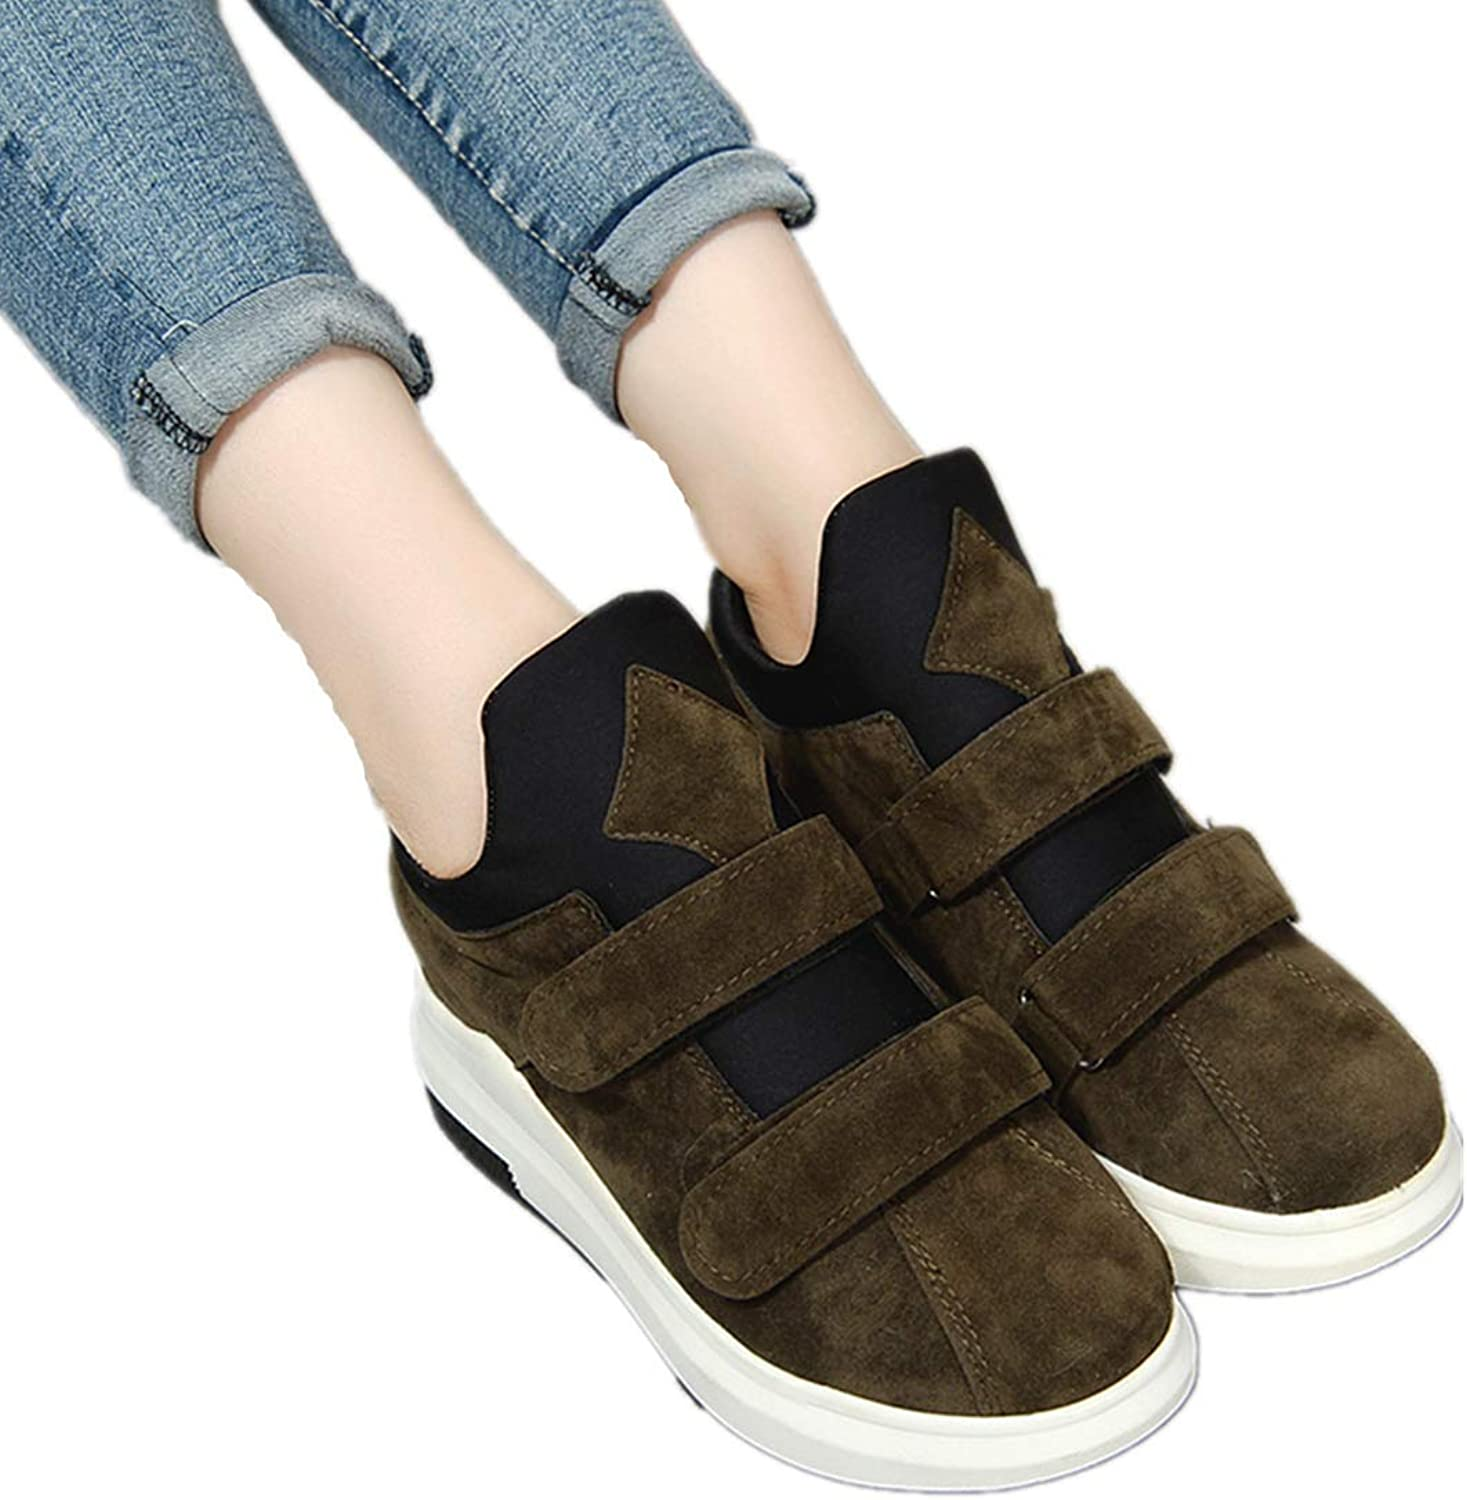 Women Casual Wedge Sneaker Comfortable Hidden Heel Walking shoes Increased Height Fashion High-top shoes